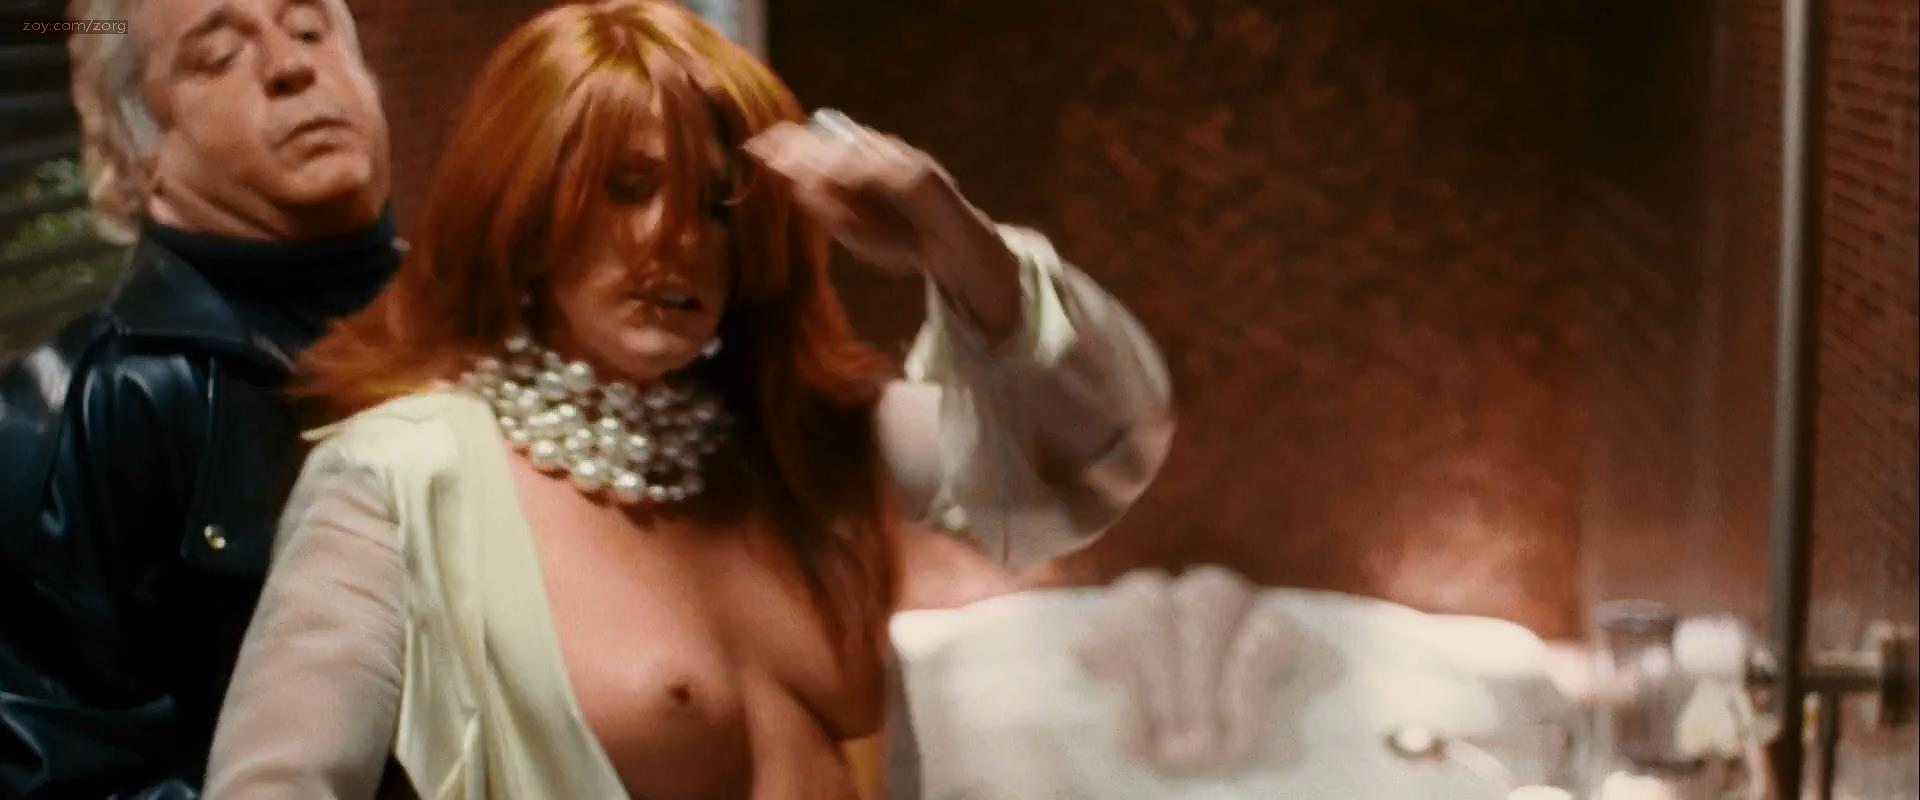 angie everhart naked topless sex oral - take me home tonight (2011